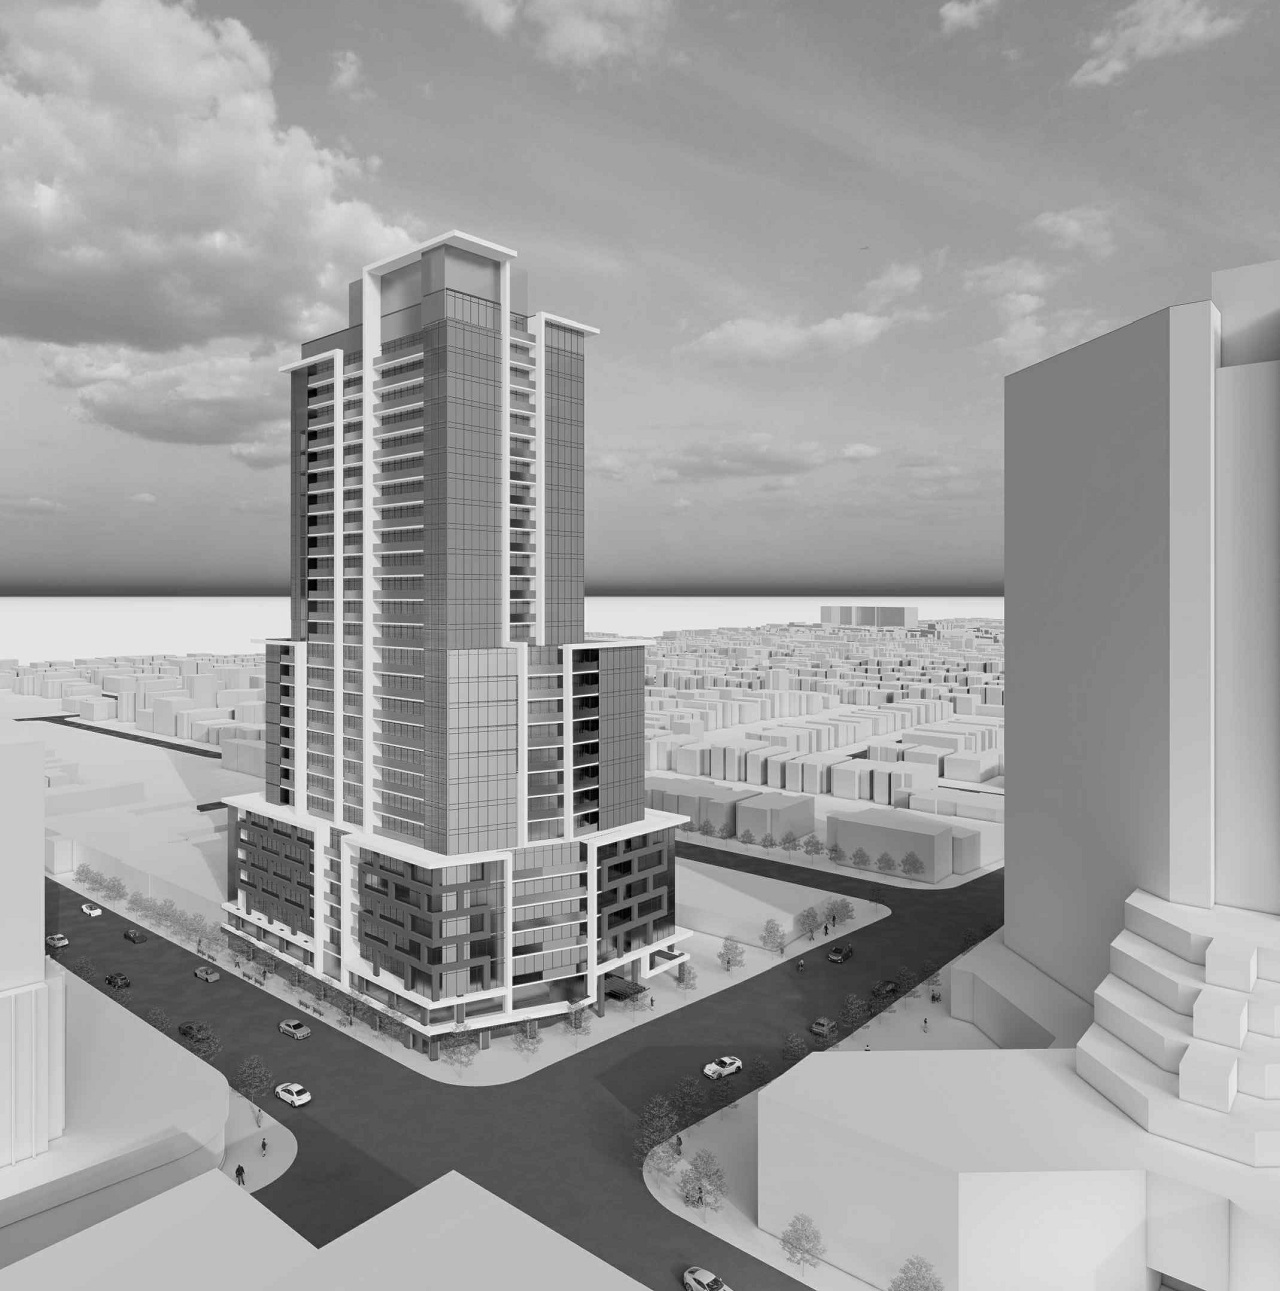 2021 Proposal for 1540 Bloor West, Toronto, designed by IBI Group for Trinity and Hazelview